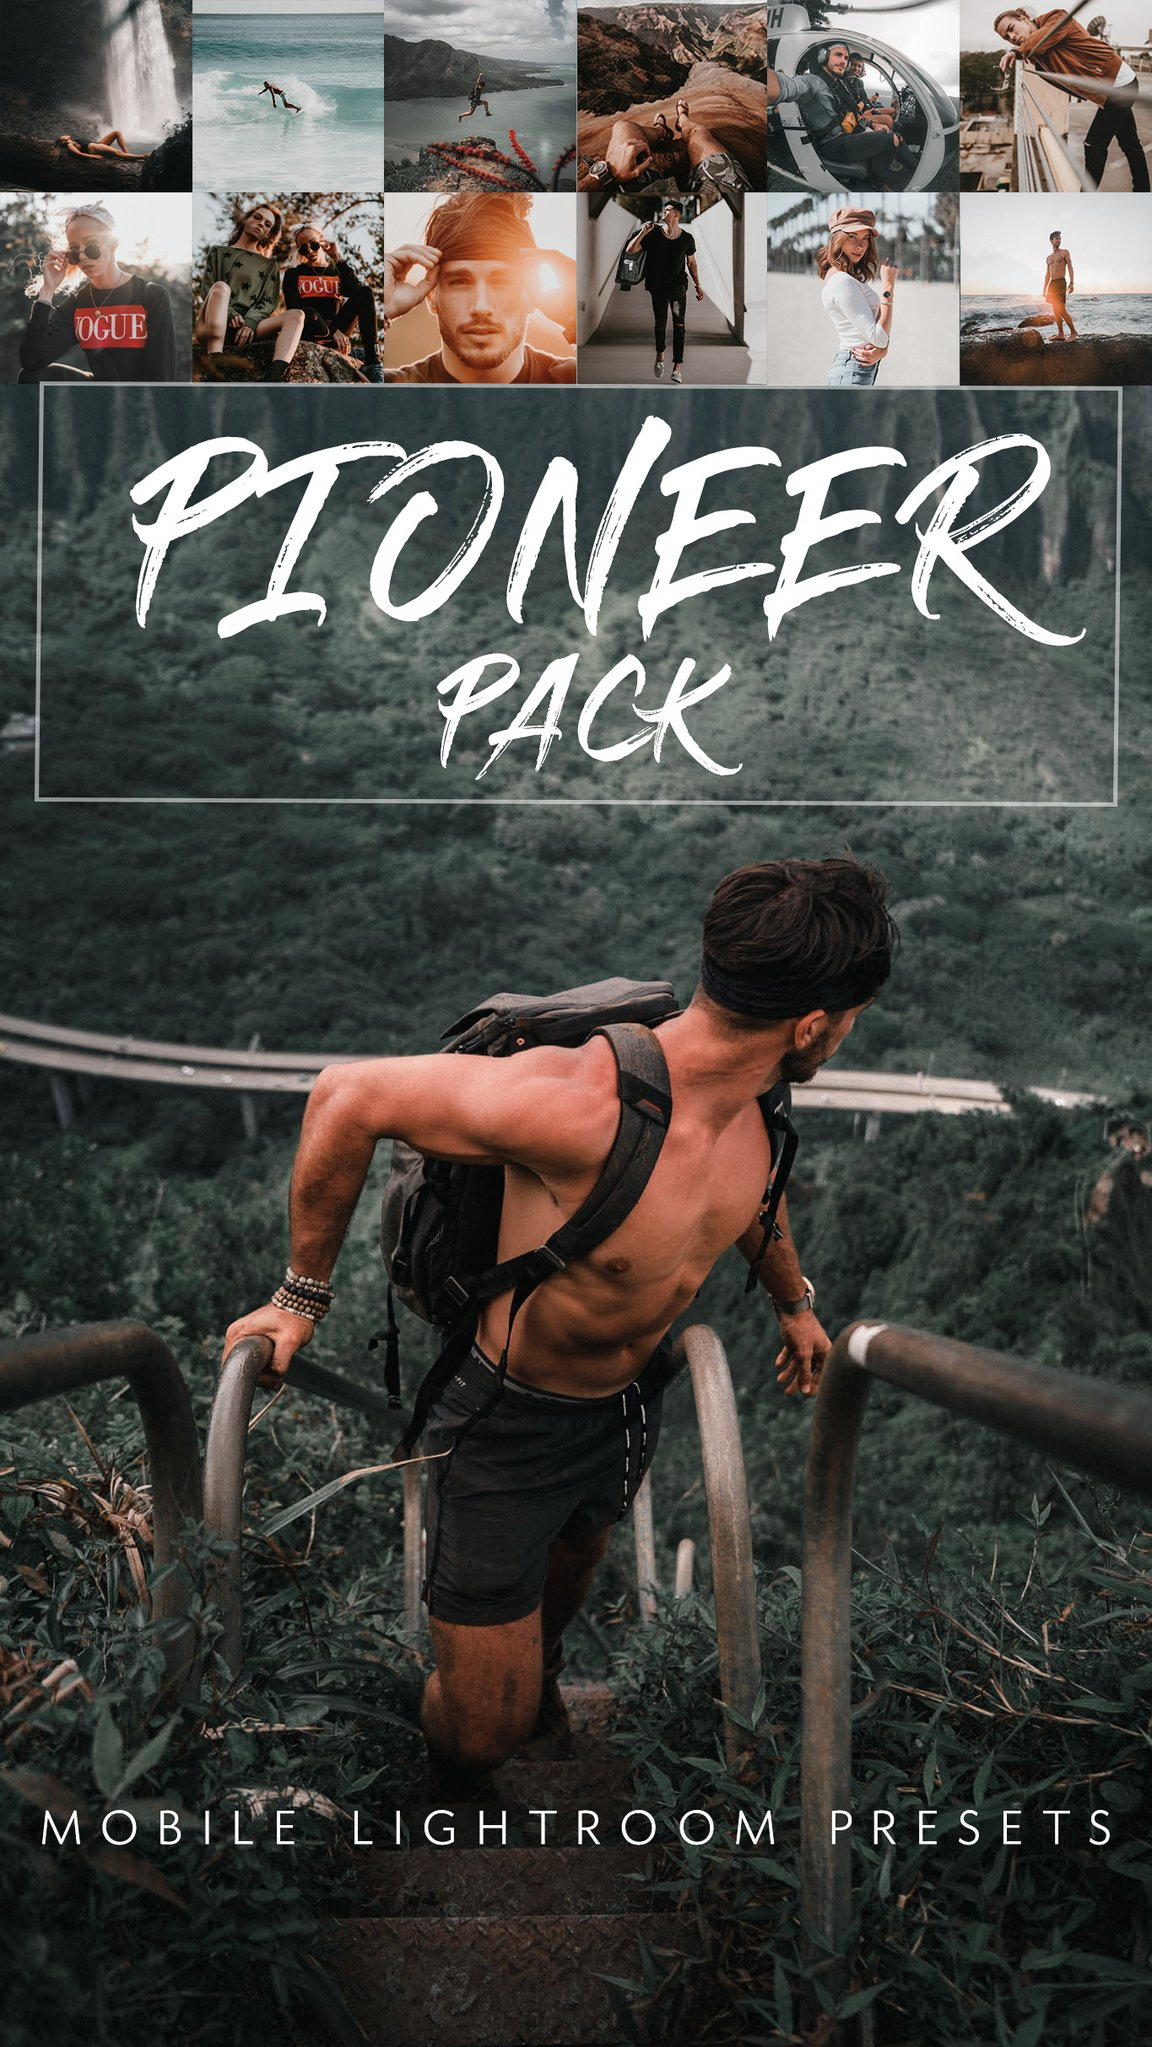 Joe Yates Pioneer Lightroom Presets Pack (Desktop + Mobile)